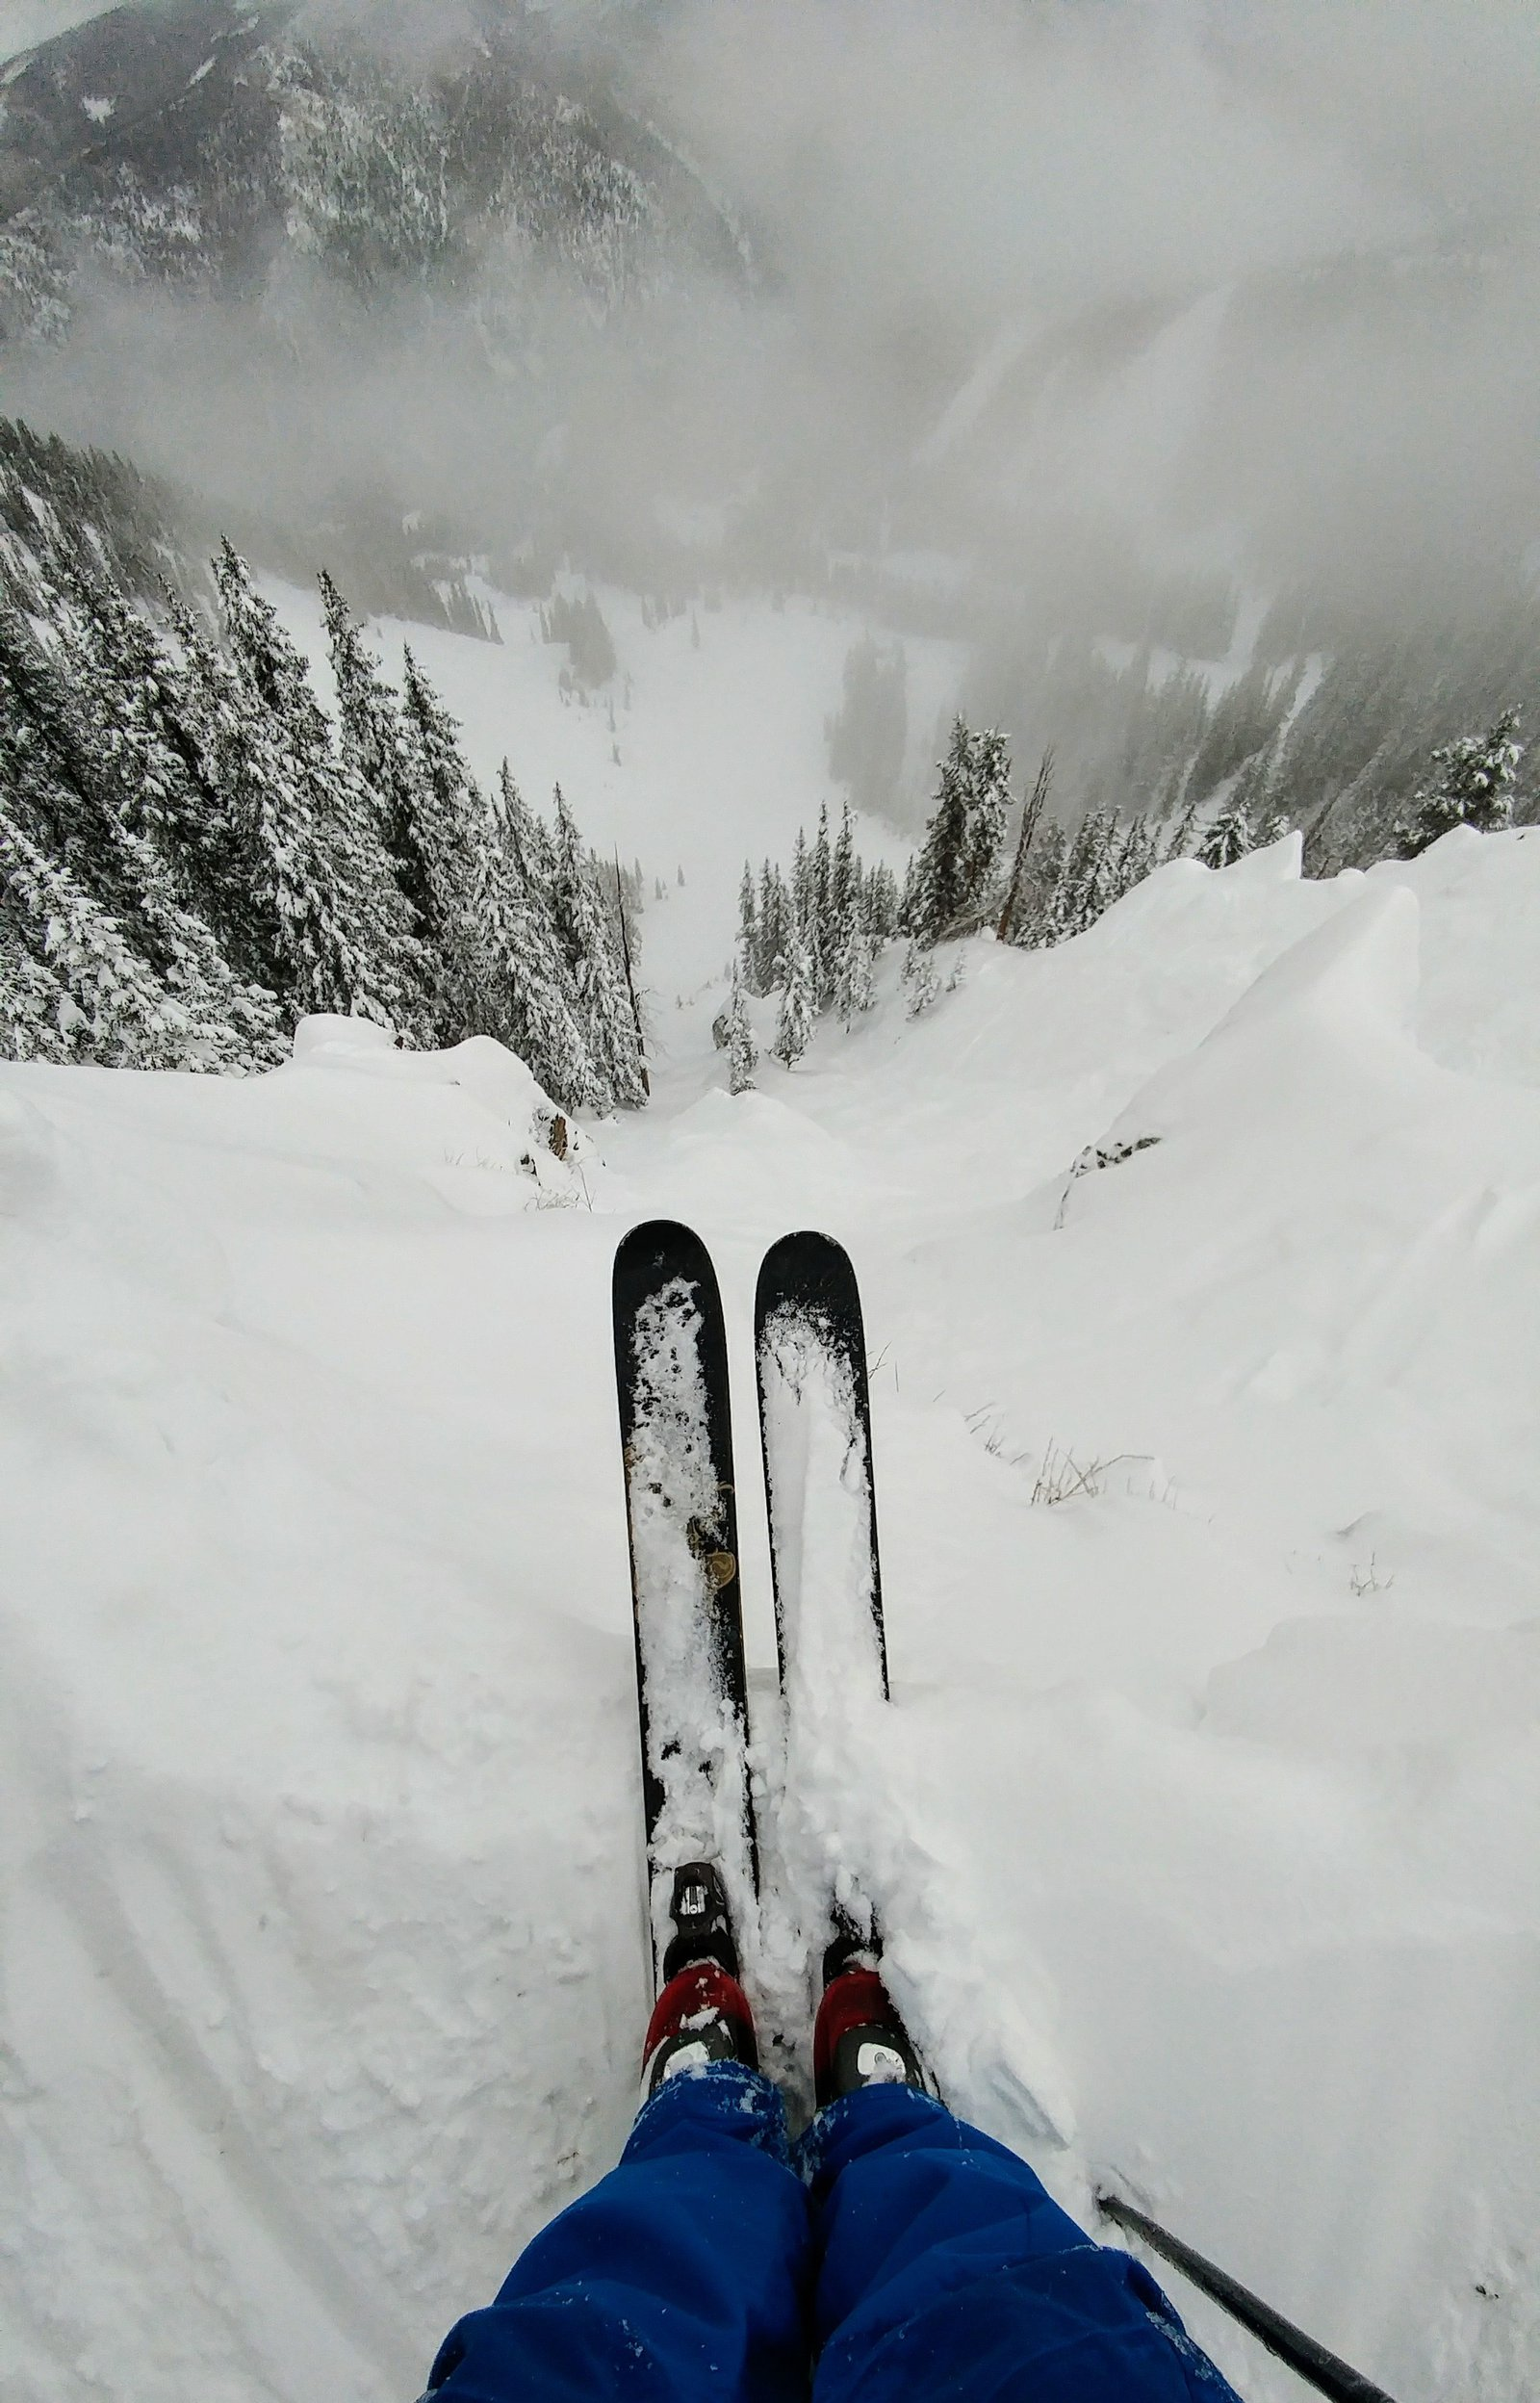 Staring down an untouched line at Taos Ski Valley